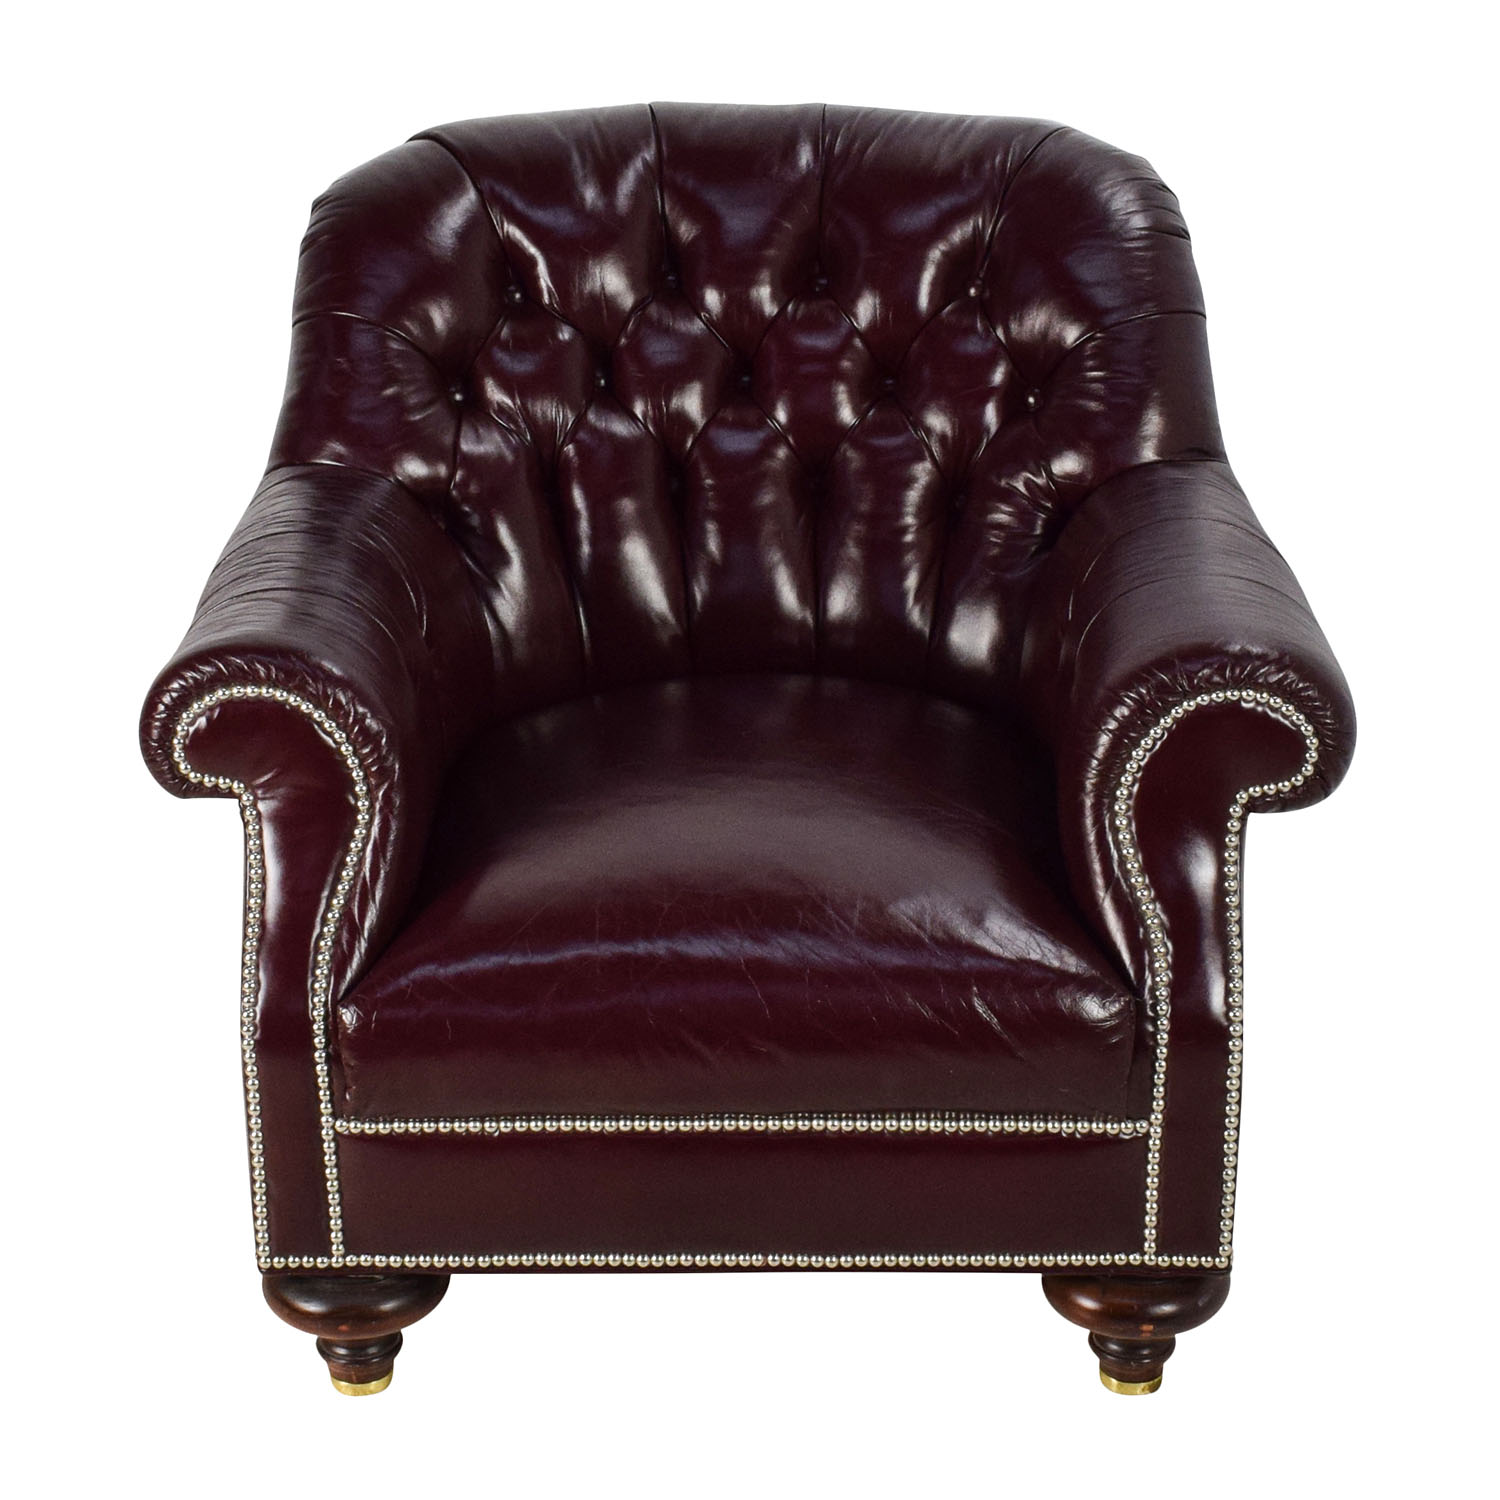 Baker Furniture Baker Tufted Leather Lounge Chair dimensions